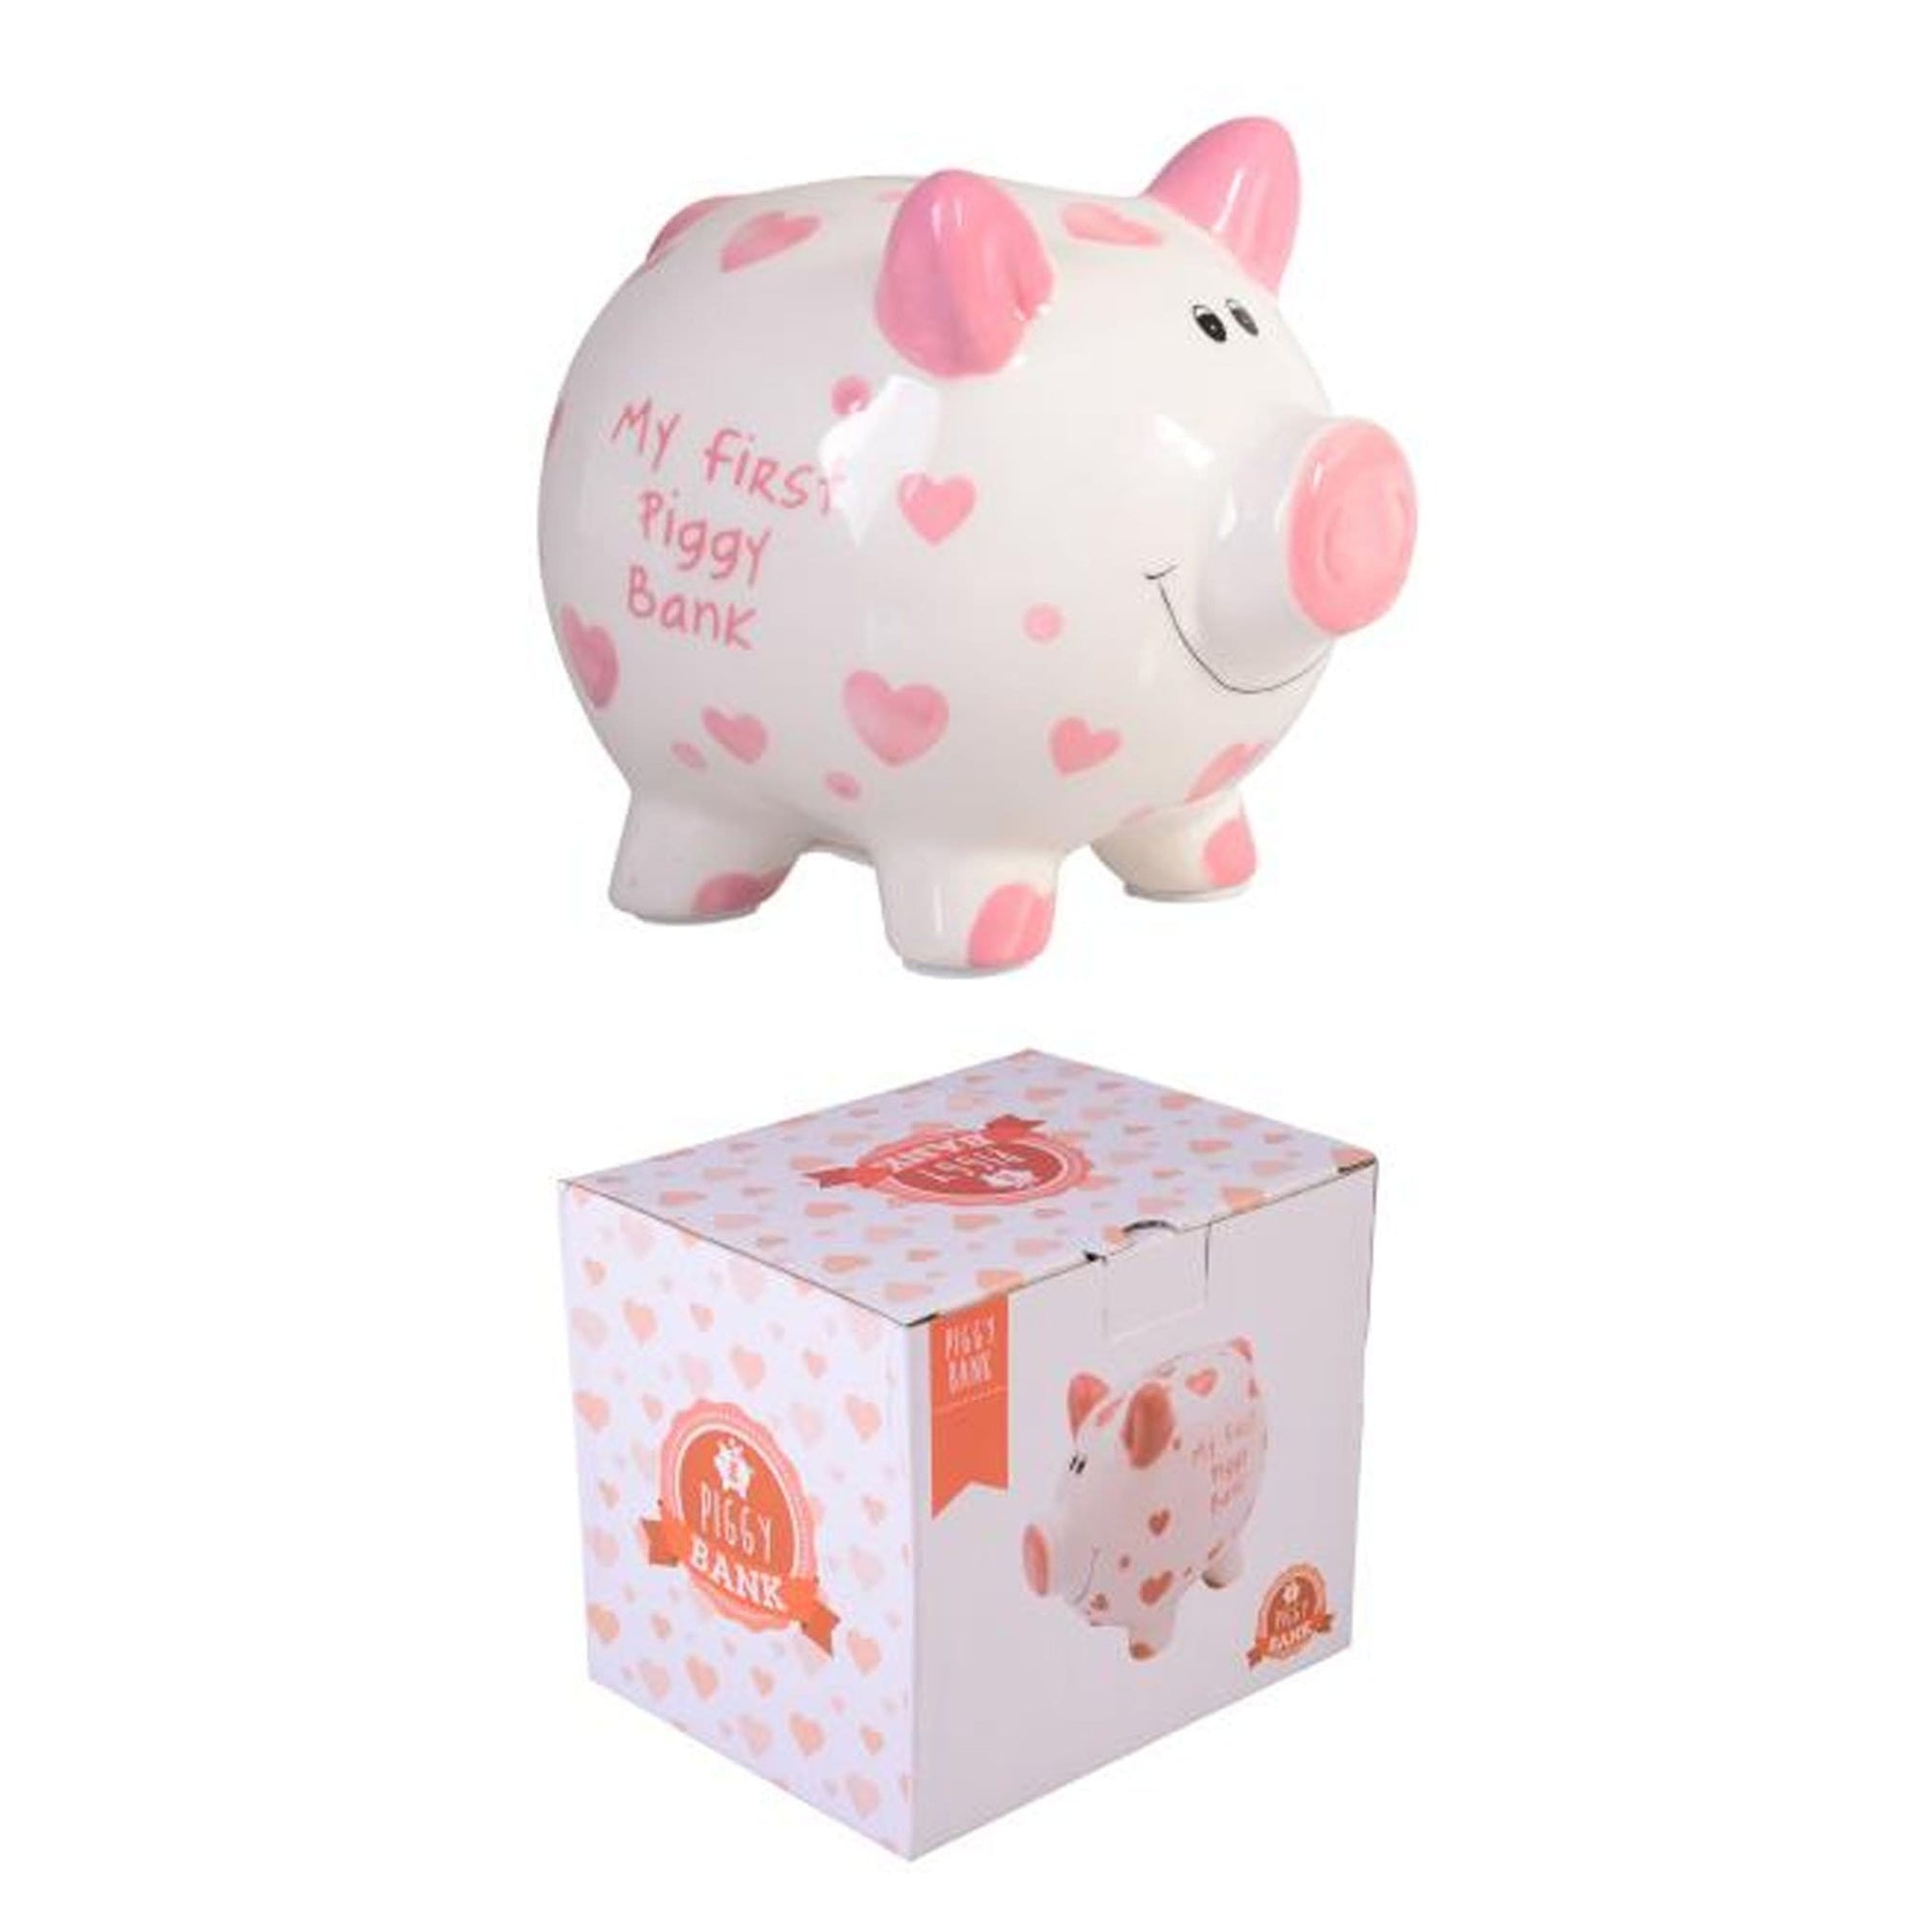 My First Piggy Bank - Pink